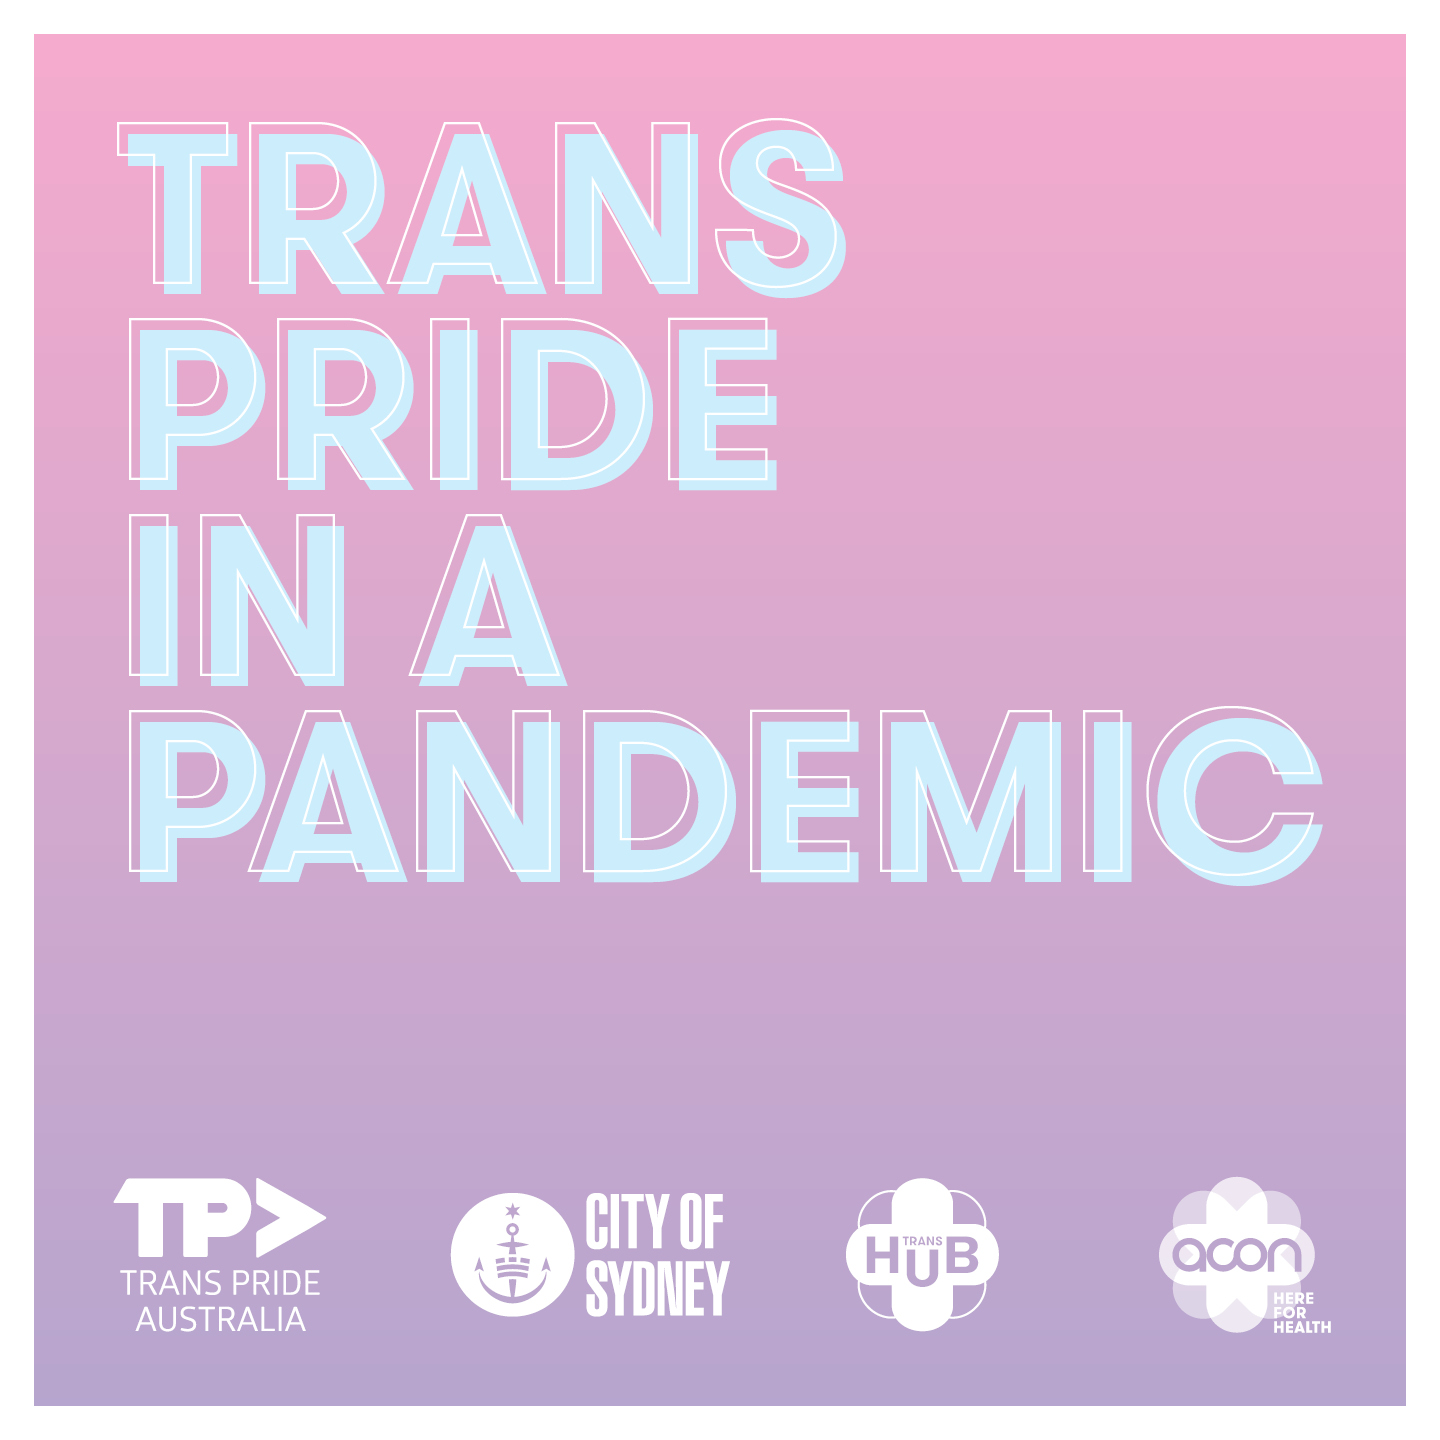 Trans Pride in a Pandemic